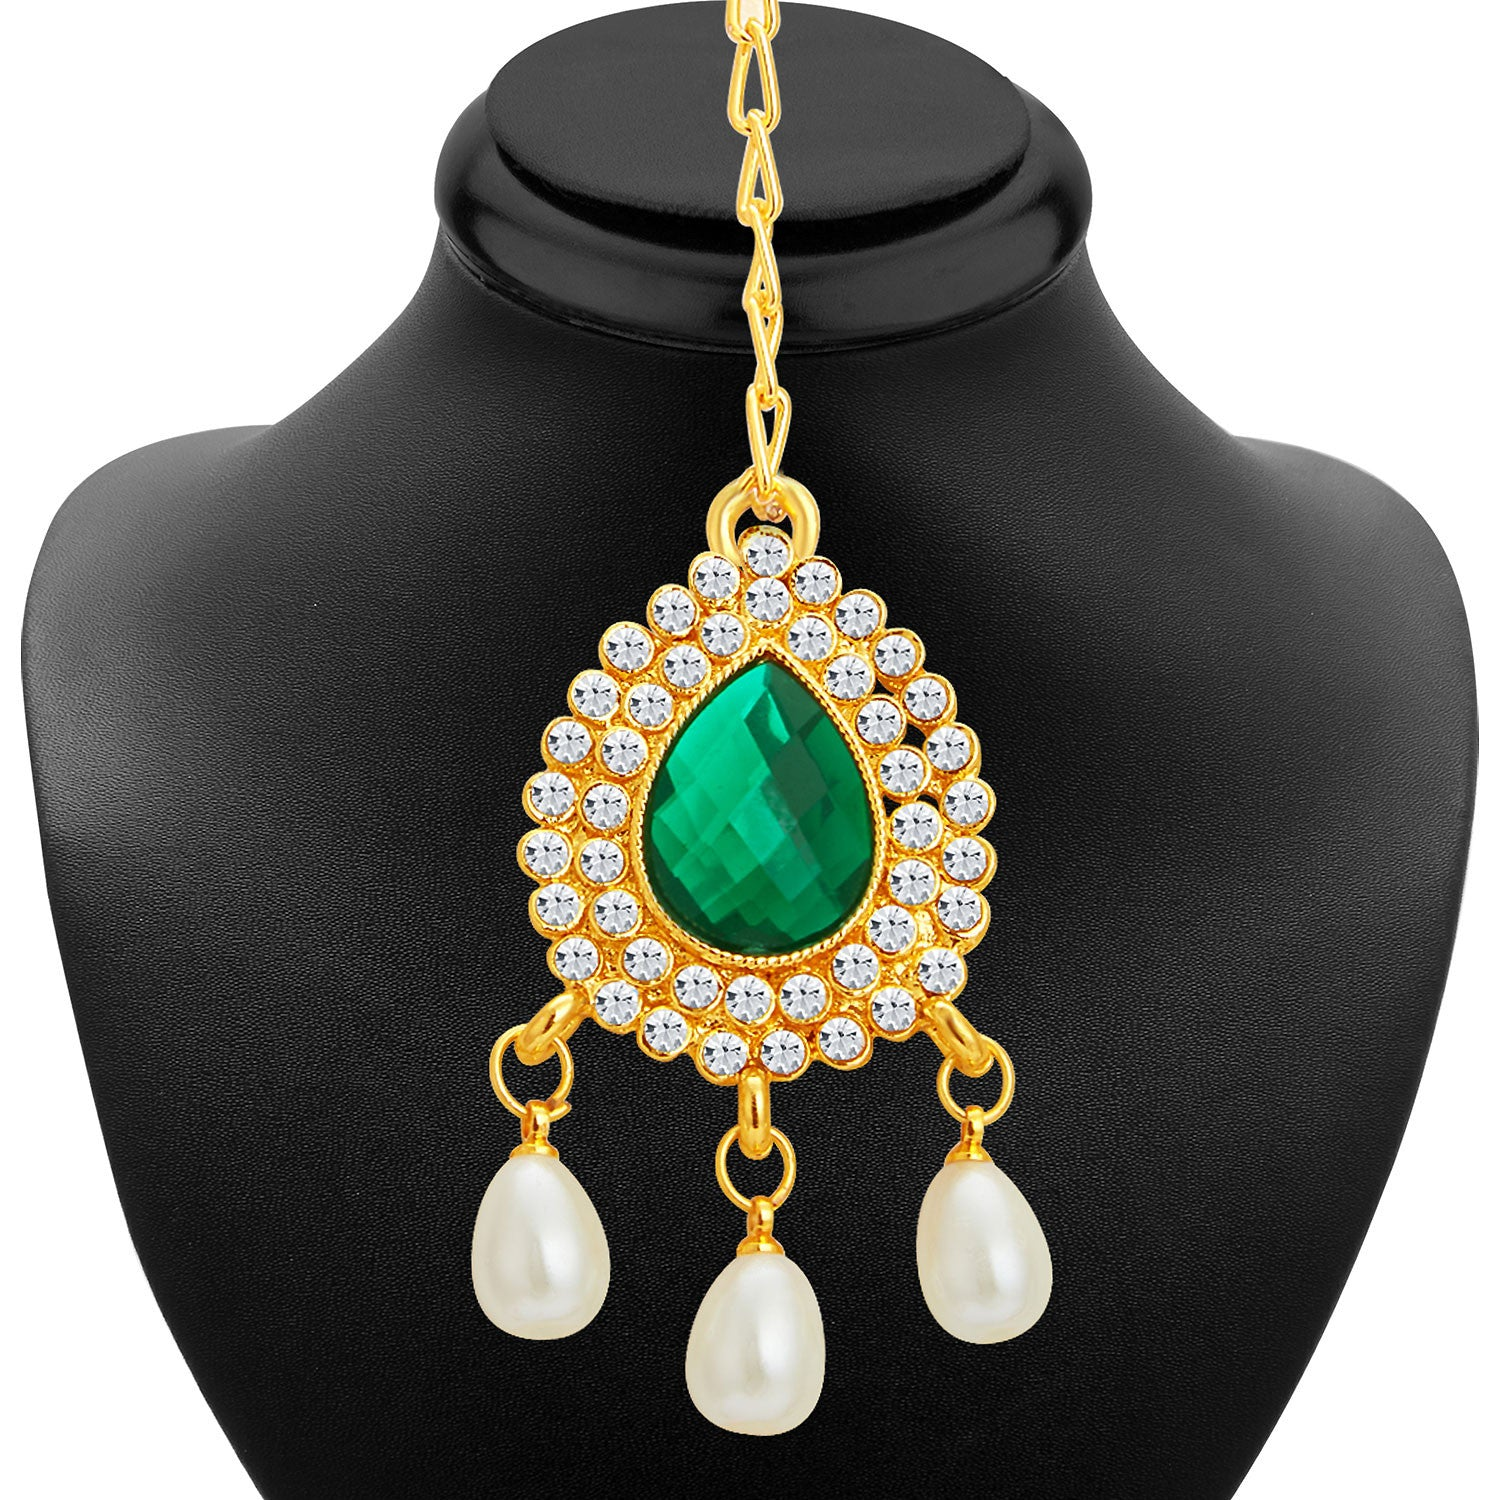 Sukkhi Traditional Gold Plated Necklace Set: Sukkhi Exotic Gold Plated AD Necklace Set For Women